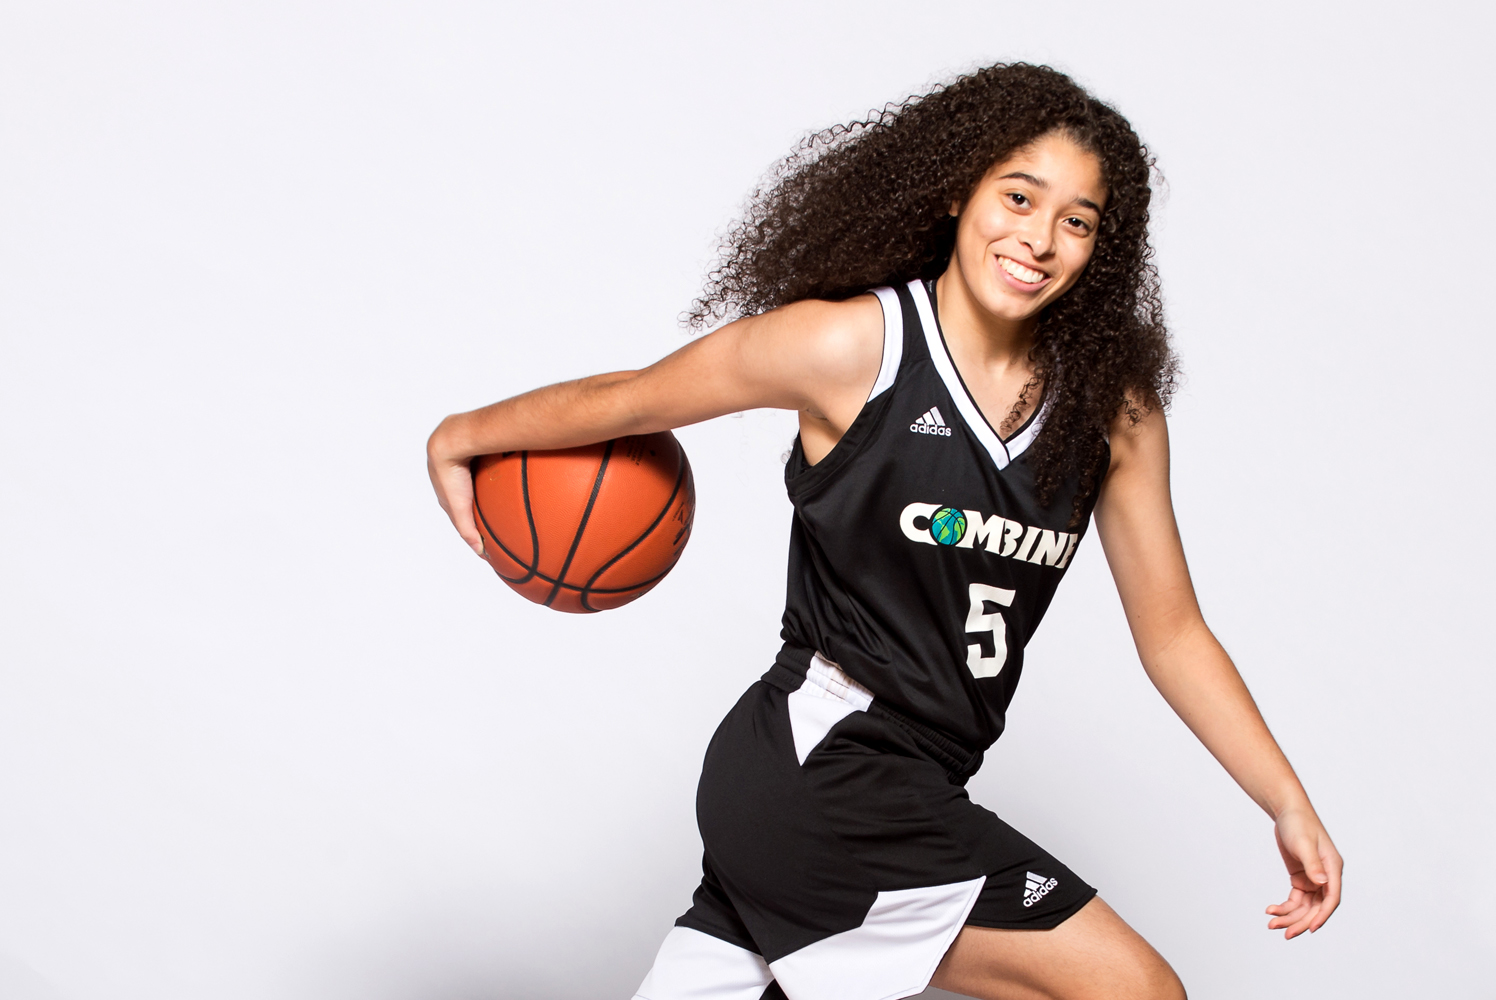 Combine Academy Girls High School Basketball Header